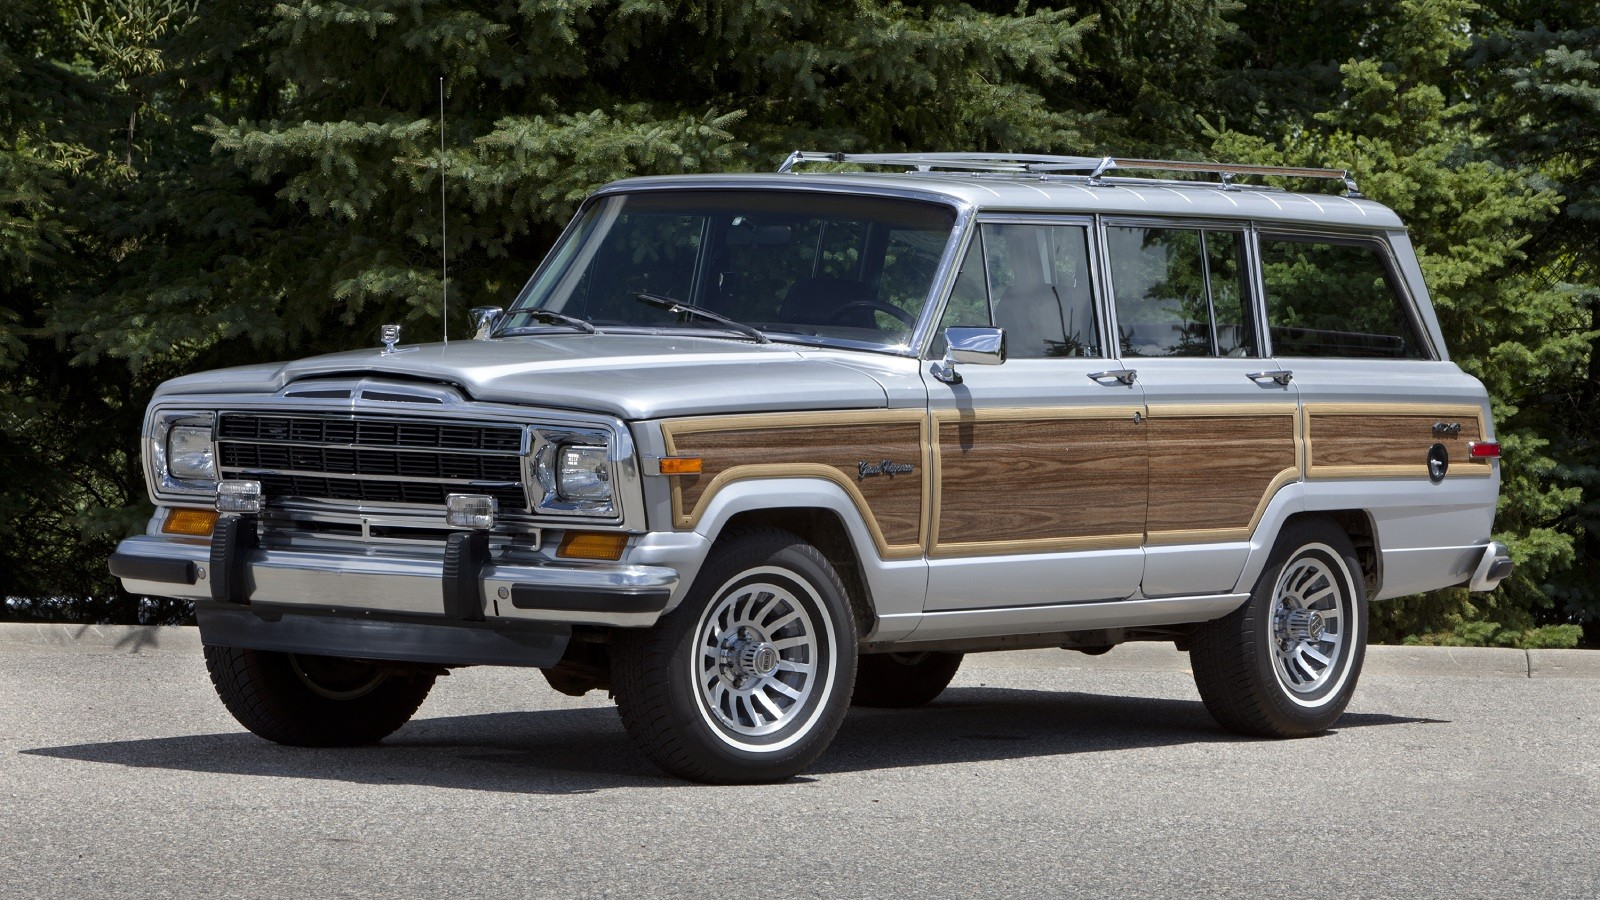 Luxury American classics that are now bargains